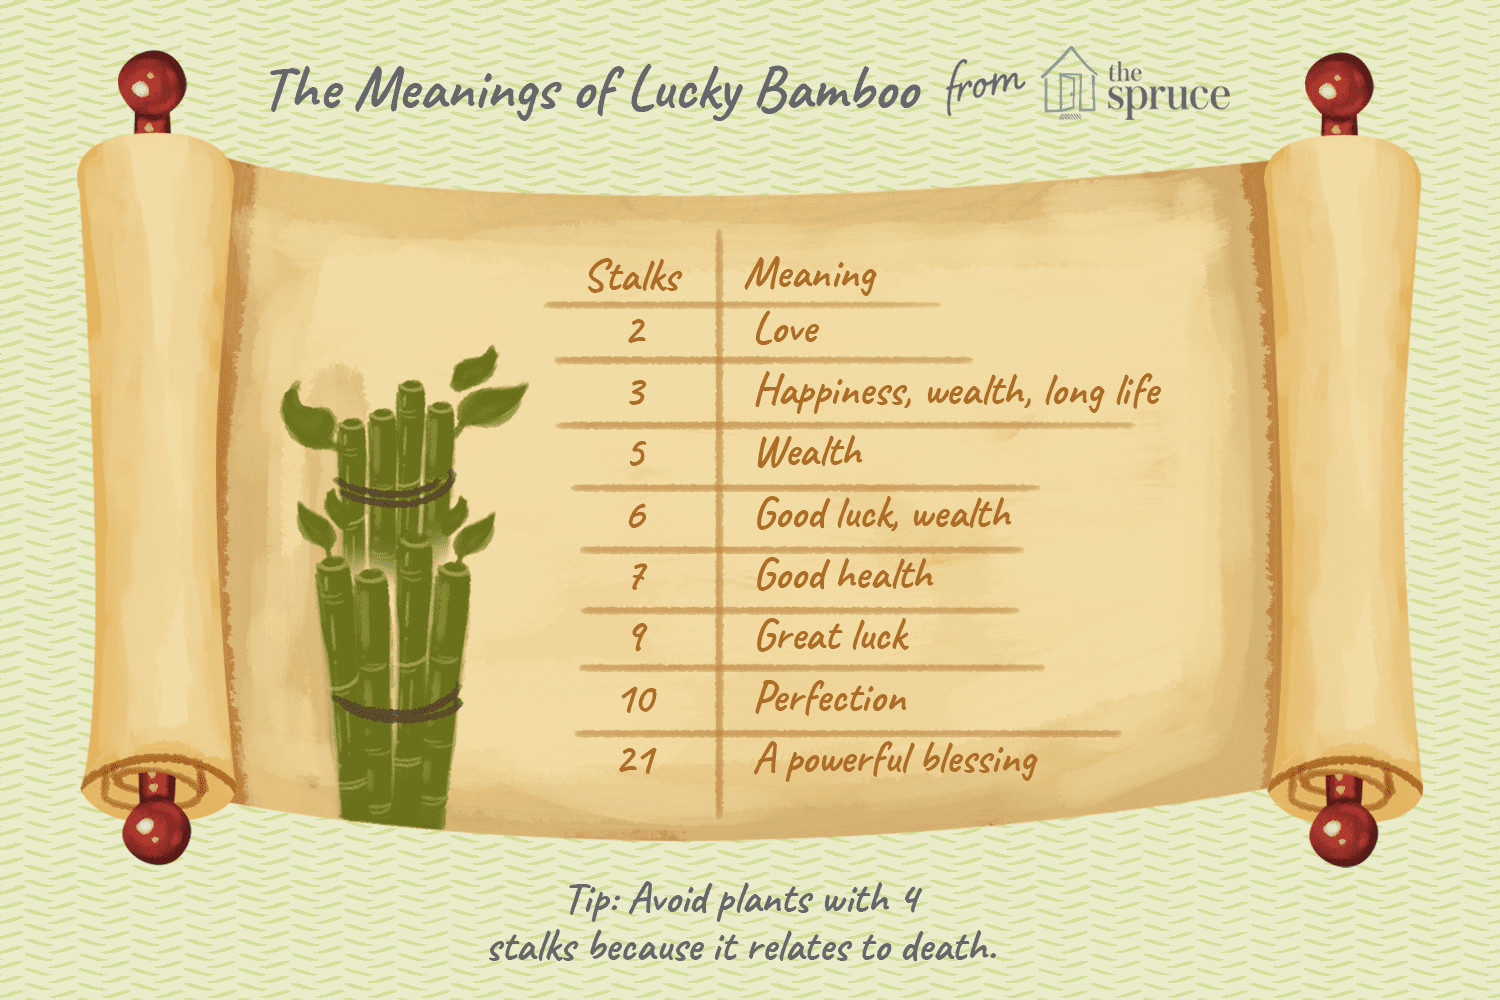 vase for lucky bamboo plant of growing and caring for lucky bamboo pertaining to caring for lucky bamboo plants